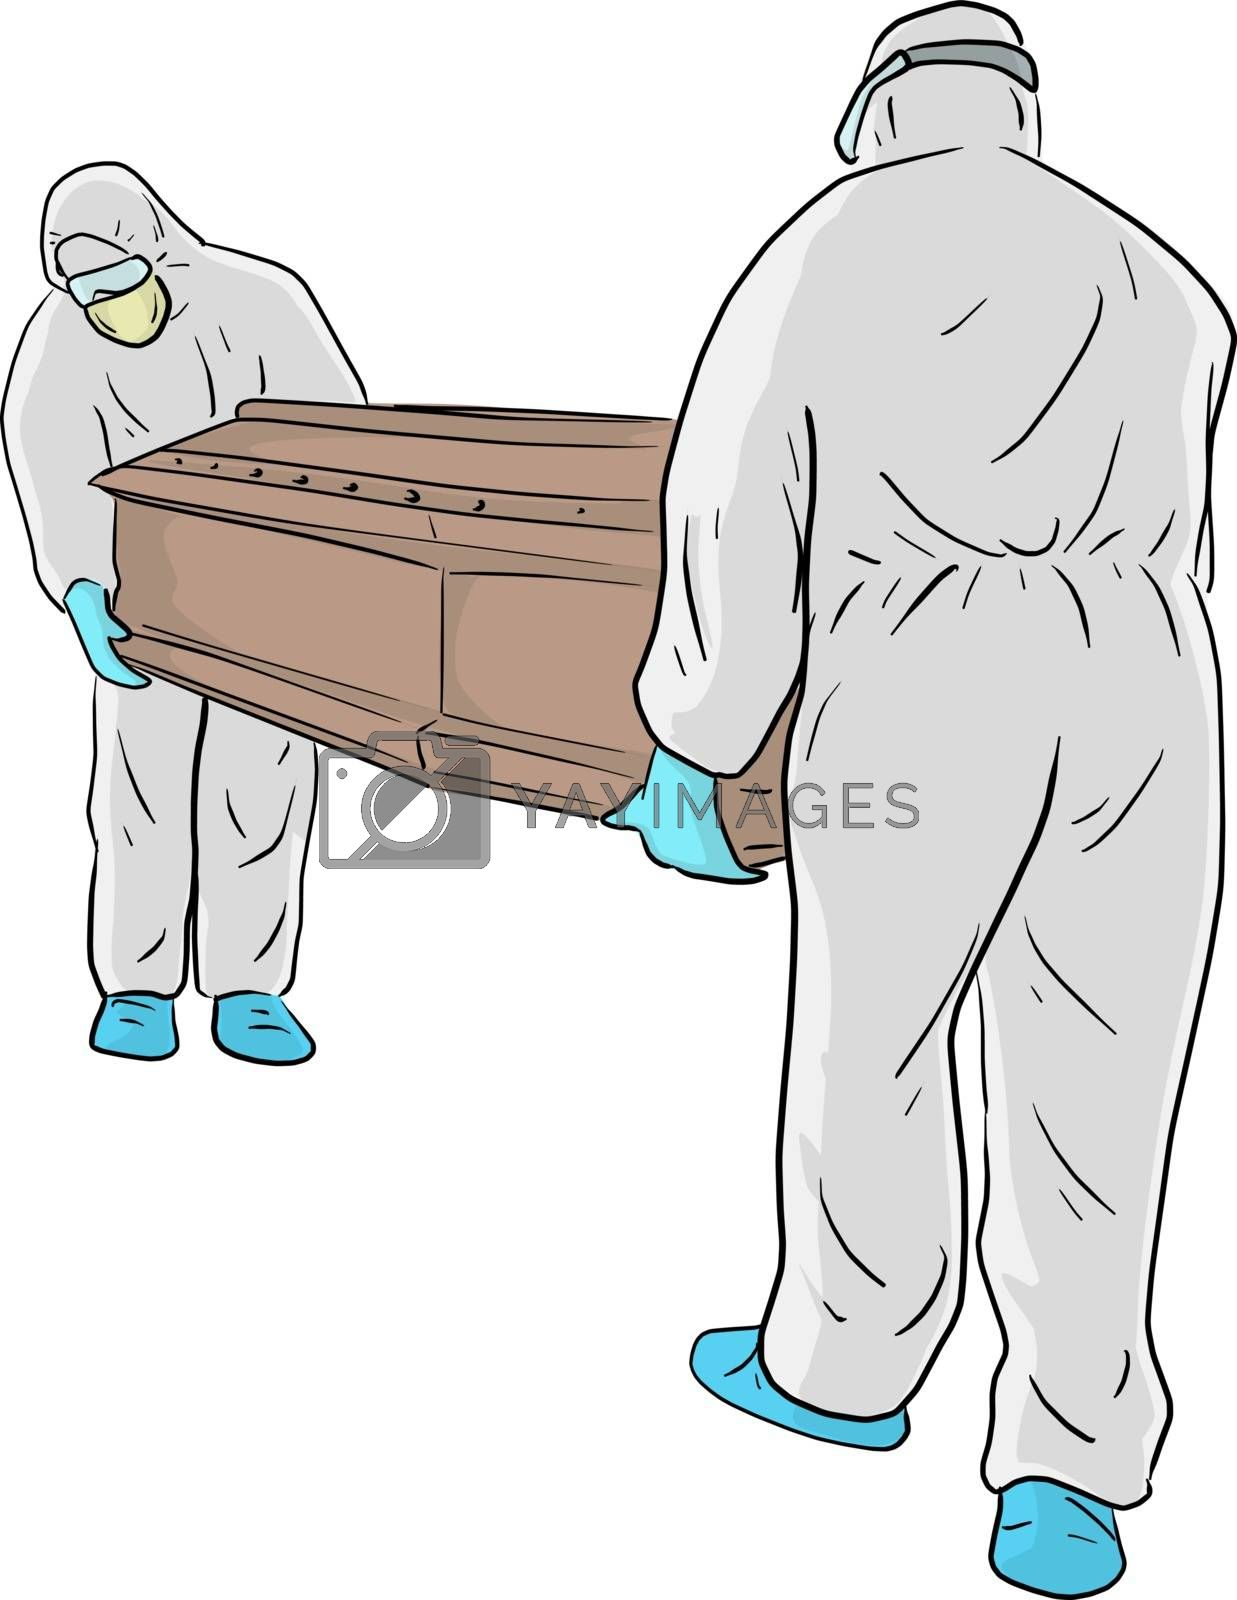 The men in PPE suit (Personal protective equipment) carry the coffin handling for disposal vector illustration sketch doodle hand drawn isolated on white background. Covid-19 situation.